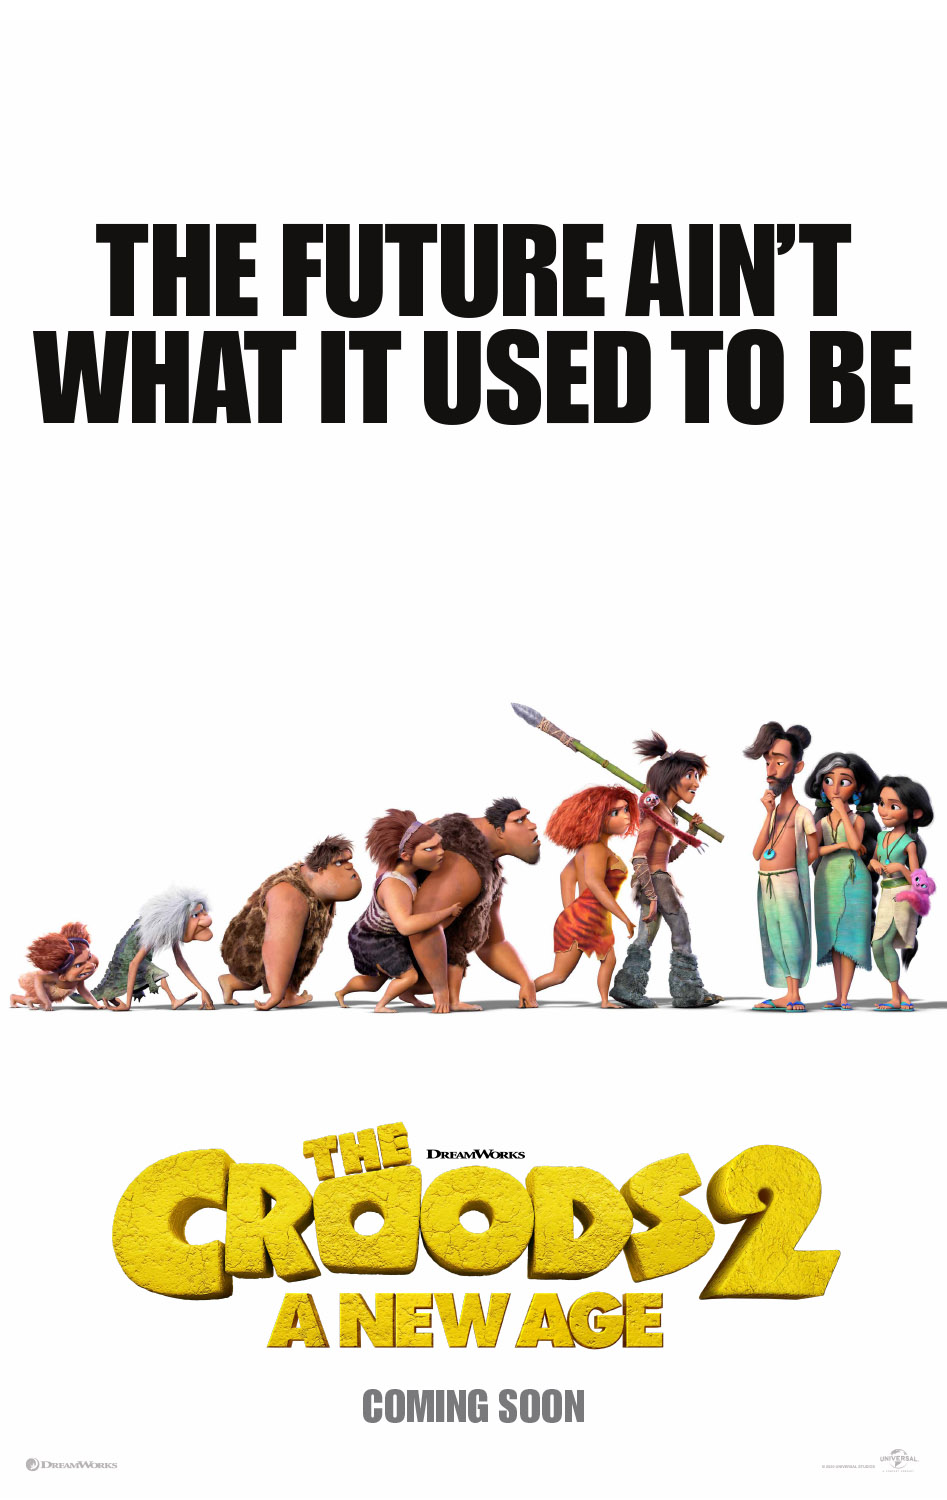 Croods: A New Age (2020) 1:30 P.M. Matinee @ O'Brien Theatre in Renfrew